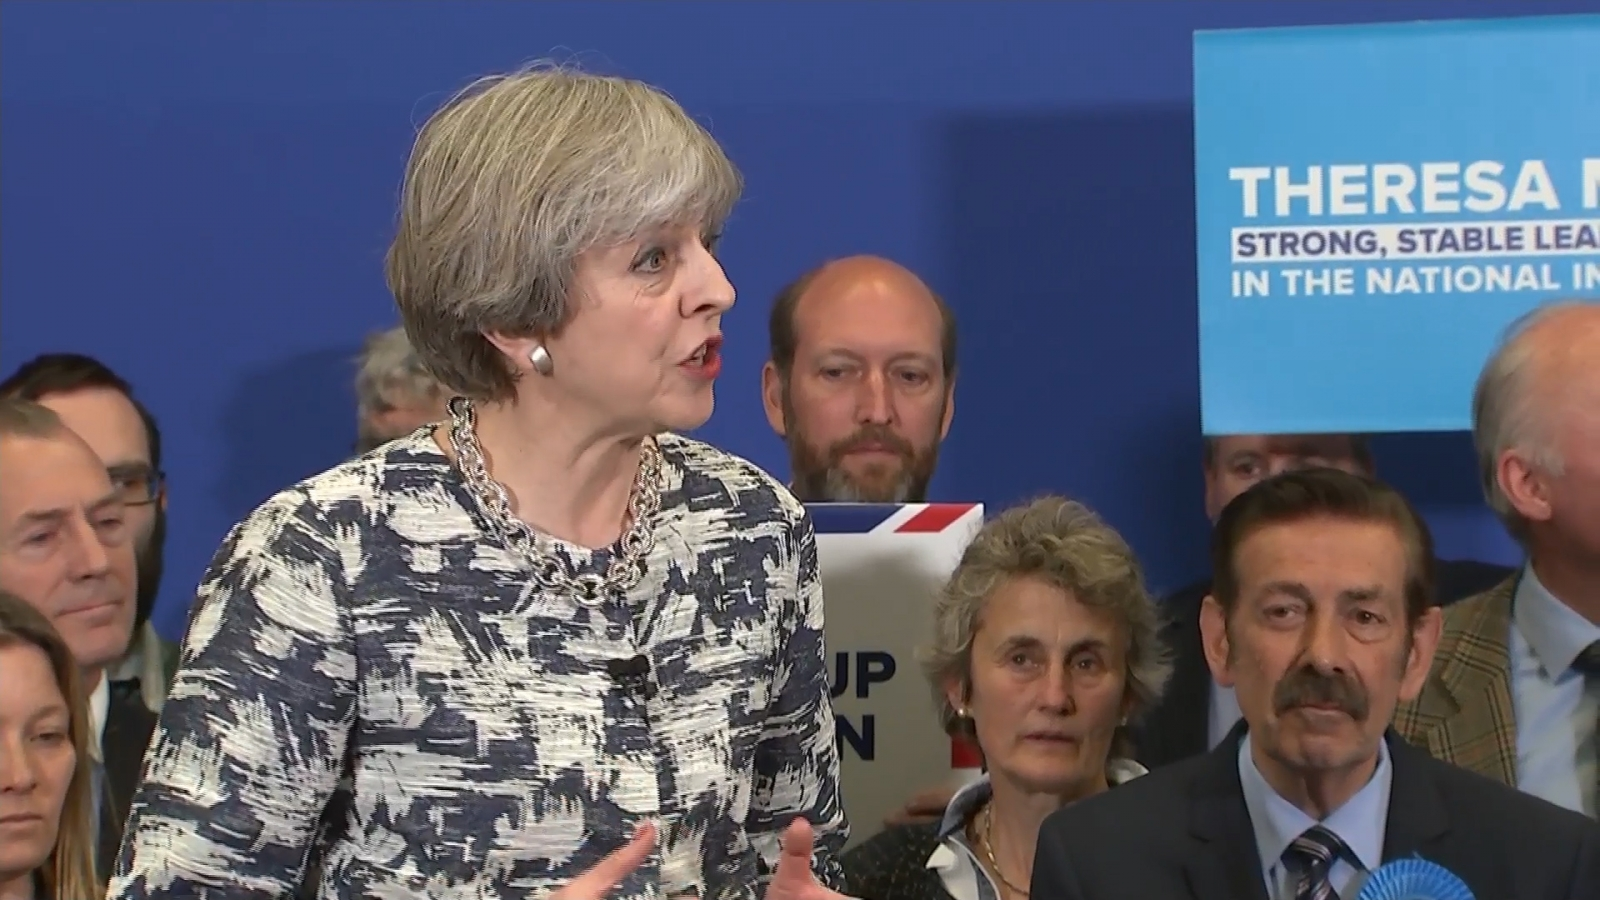 theresa-may-pledges-to-change-human-rights-laws-if-they-get-in-the-way